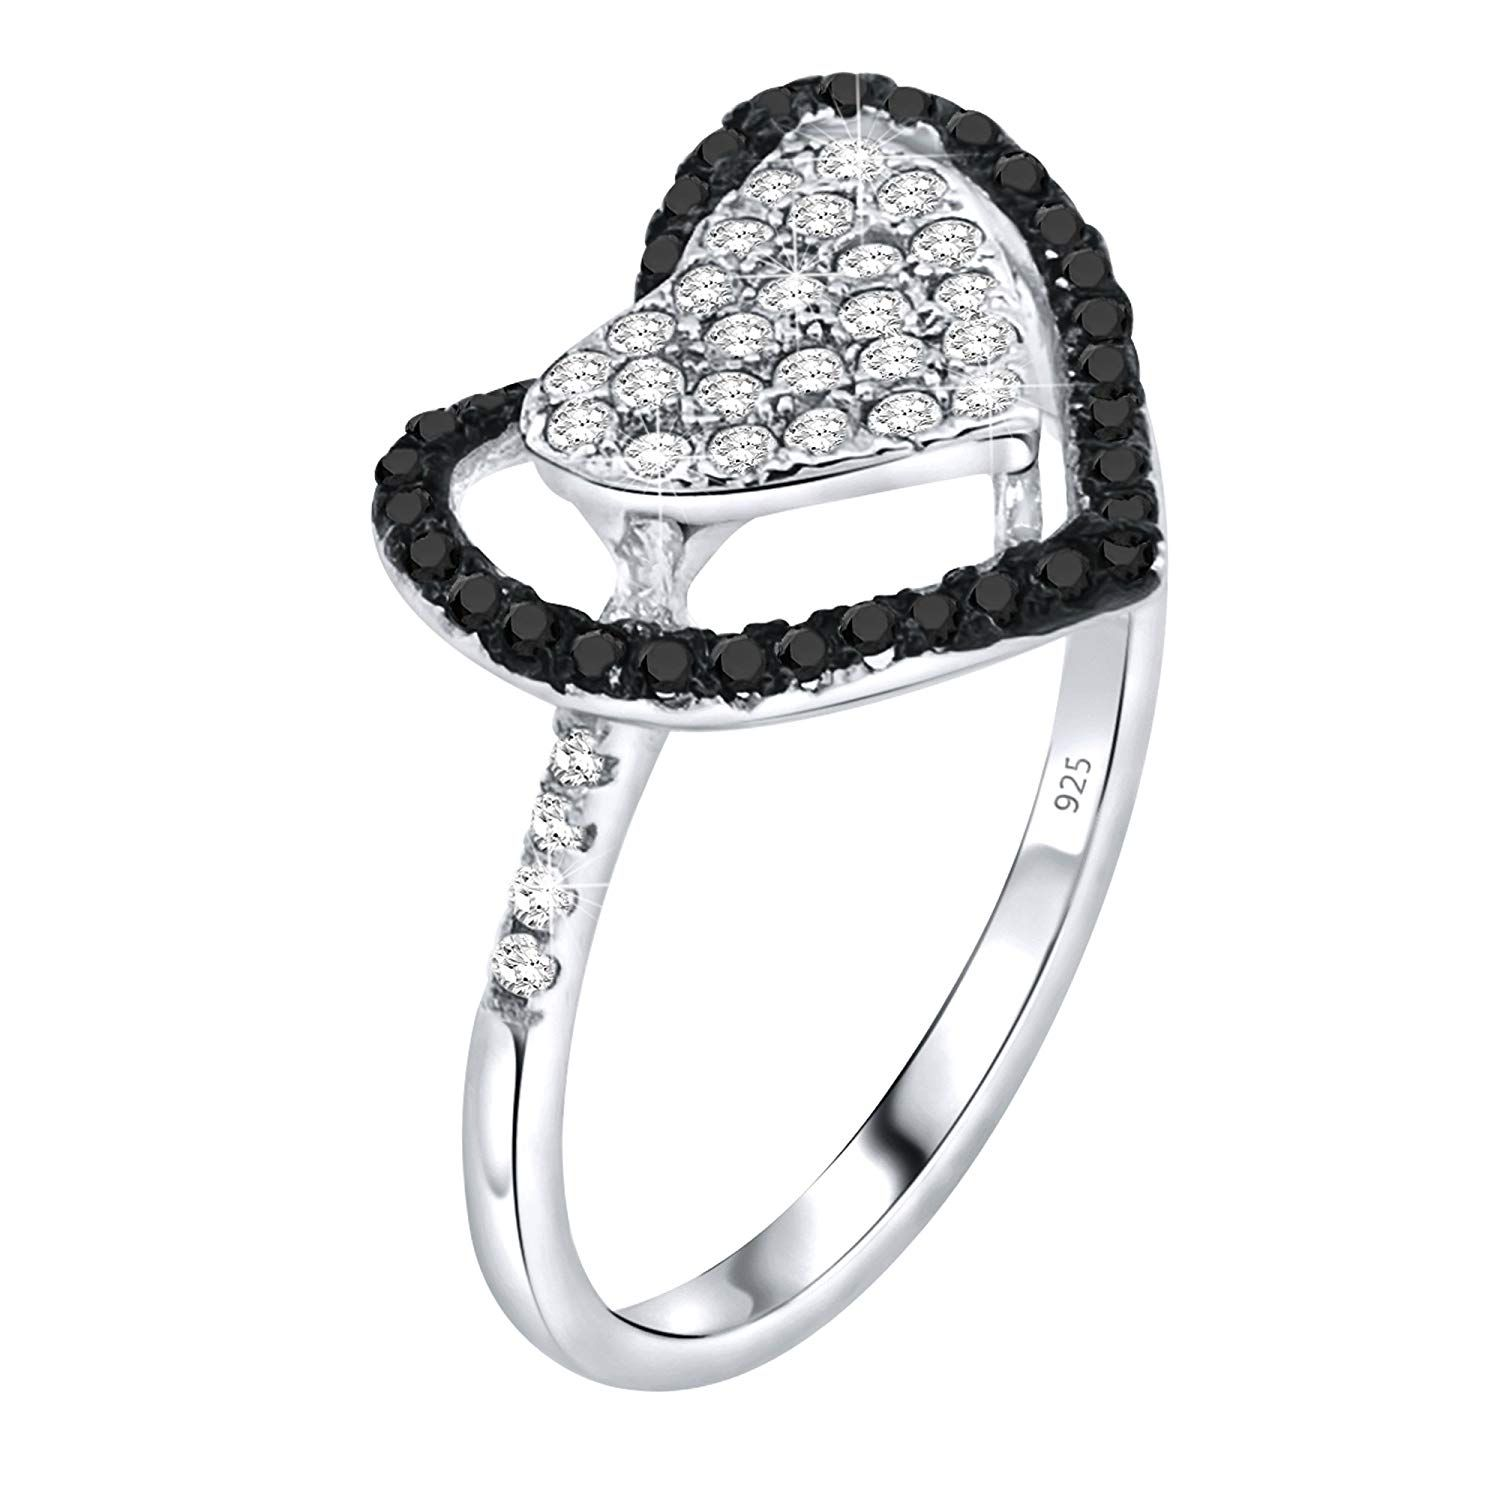 Platinum Plated 925 Sterling Silver Ring w// Natural 10.0 mm Heart Sapphire